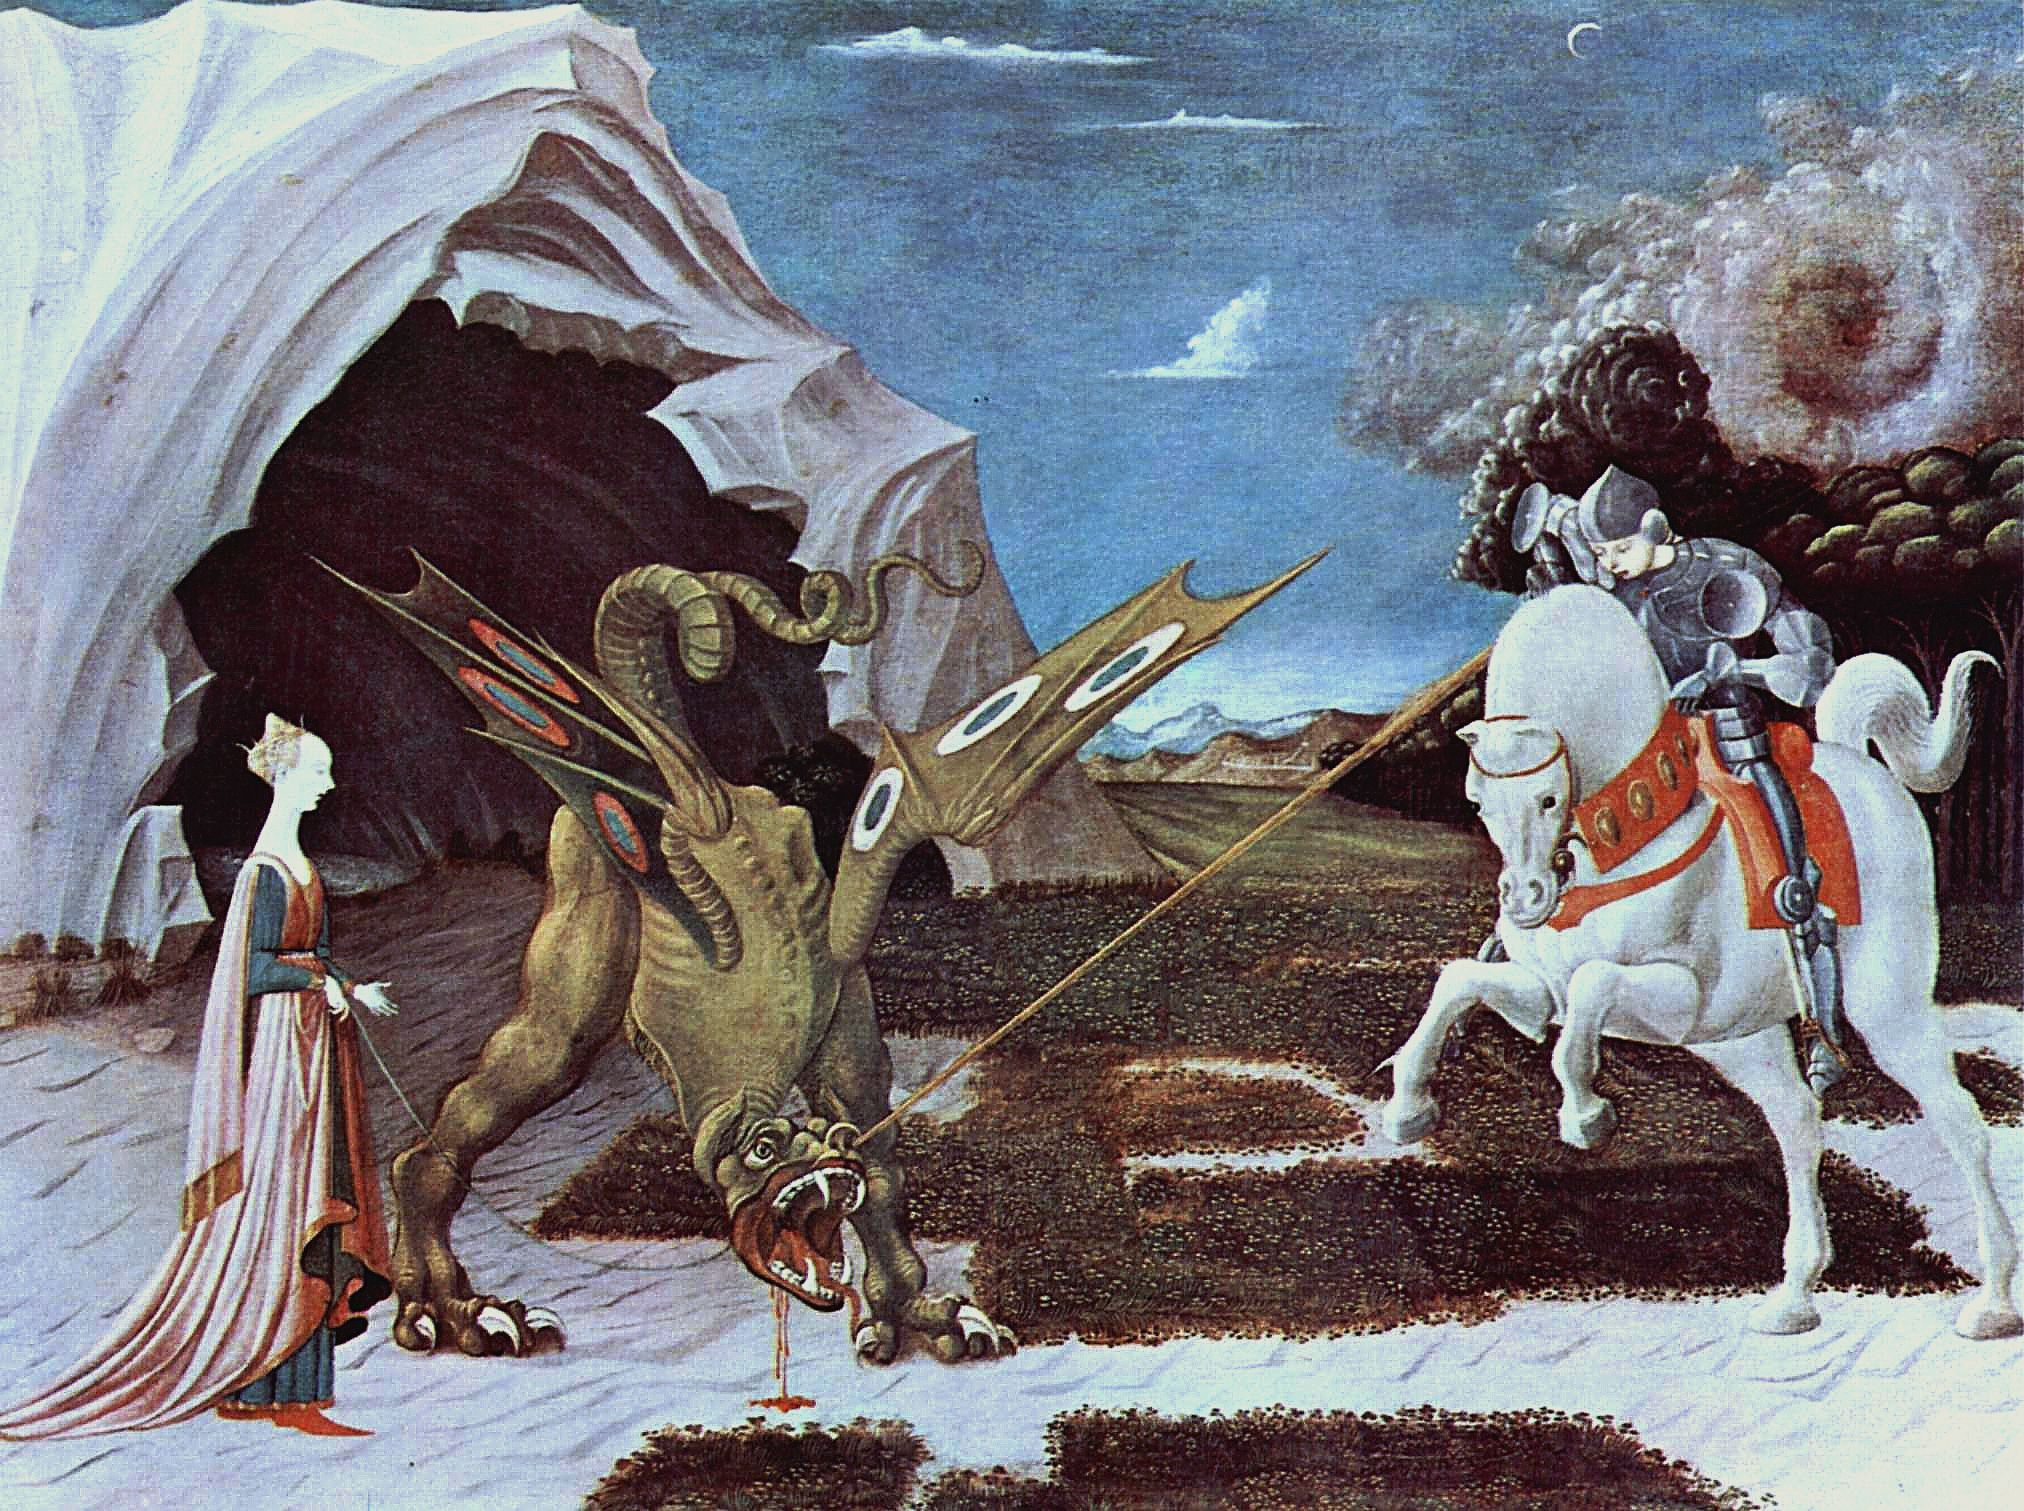 uccello saint george and the dragon essay Paolo uccello, st george and the dragon, ca 1440 paolo uccello, st george and the dragon ca 1460-1470 the first two paintings in this convergence are two versions of the same scene: st george and the dragon, both by the 15th-century italian painter paolo uccello uccello painted the first.